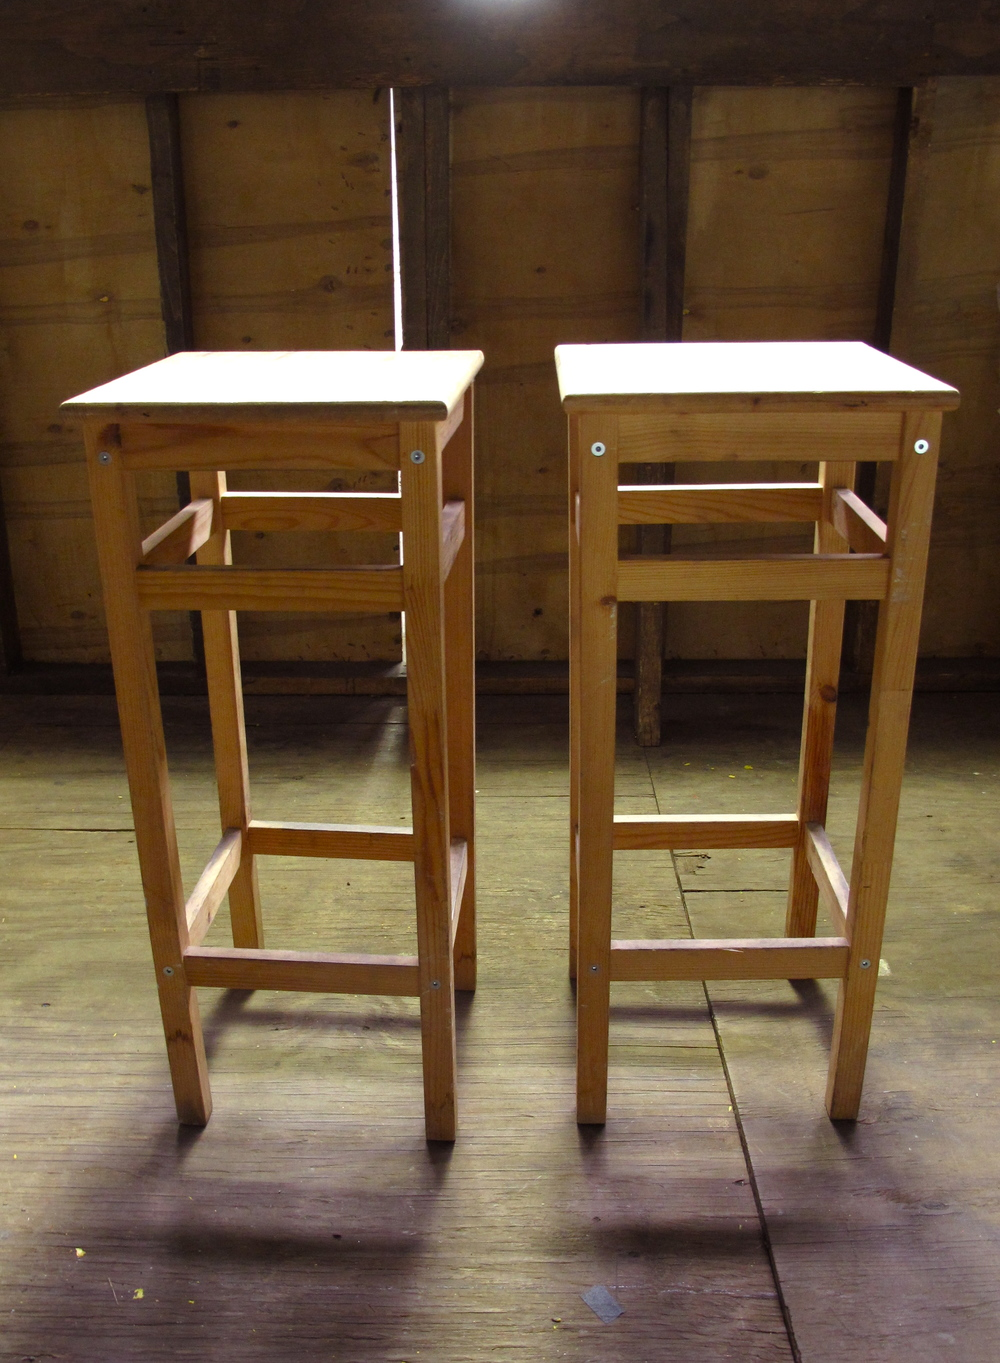 win Square Natural Wood Stools (2) $30/ea